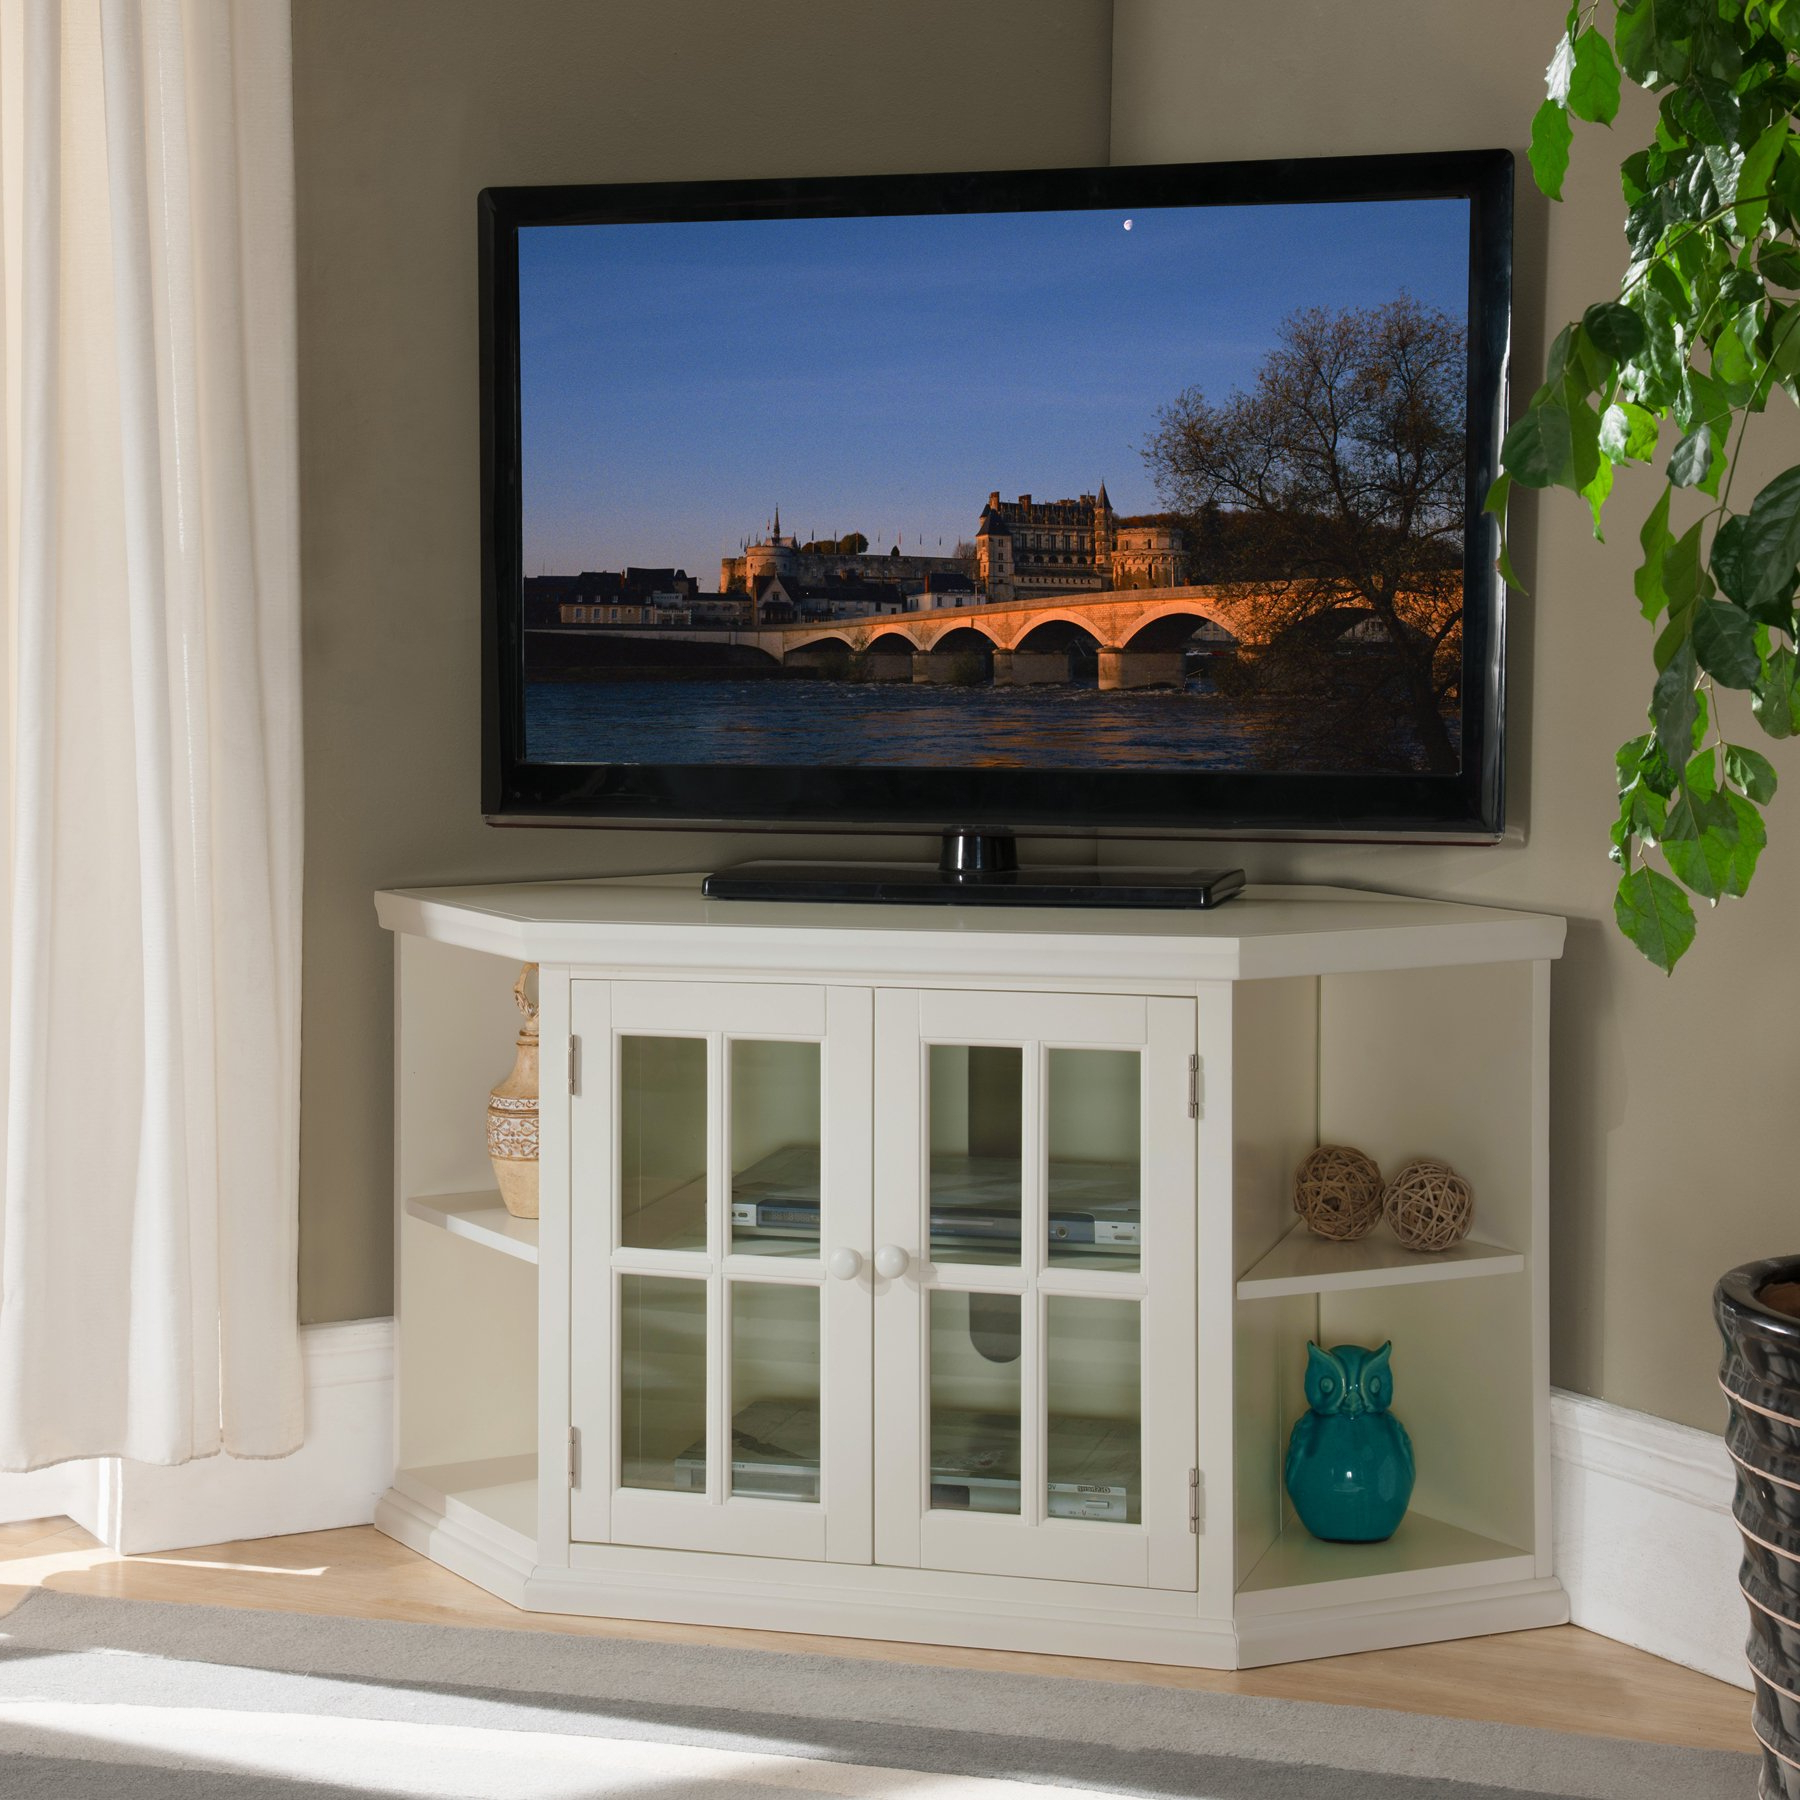 Widely Used Shop White 46 Inch Corner Tv Stand With Bookcases – Free Shipping On Within Tv Stands With Bookcases (View 16 of 20)